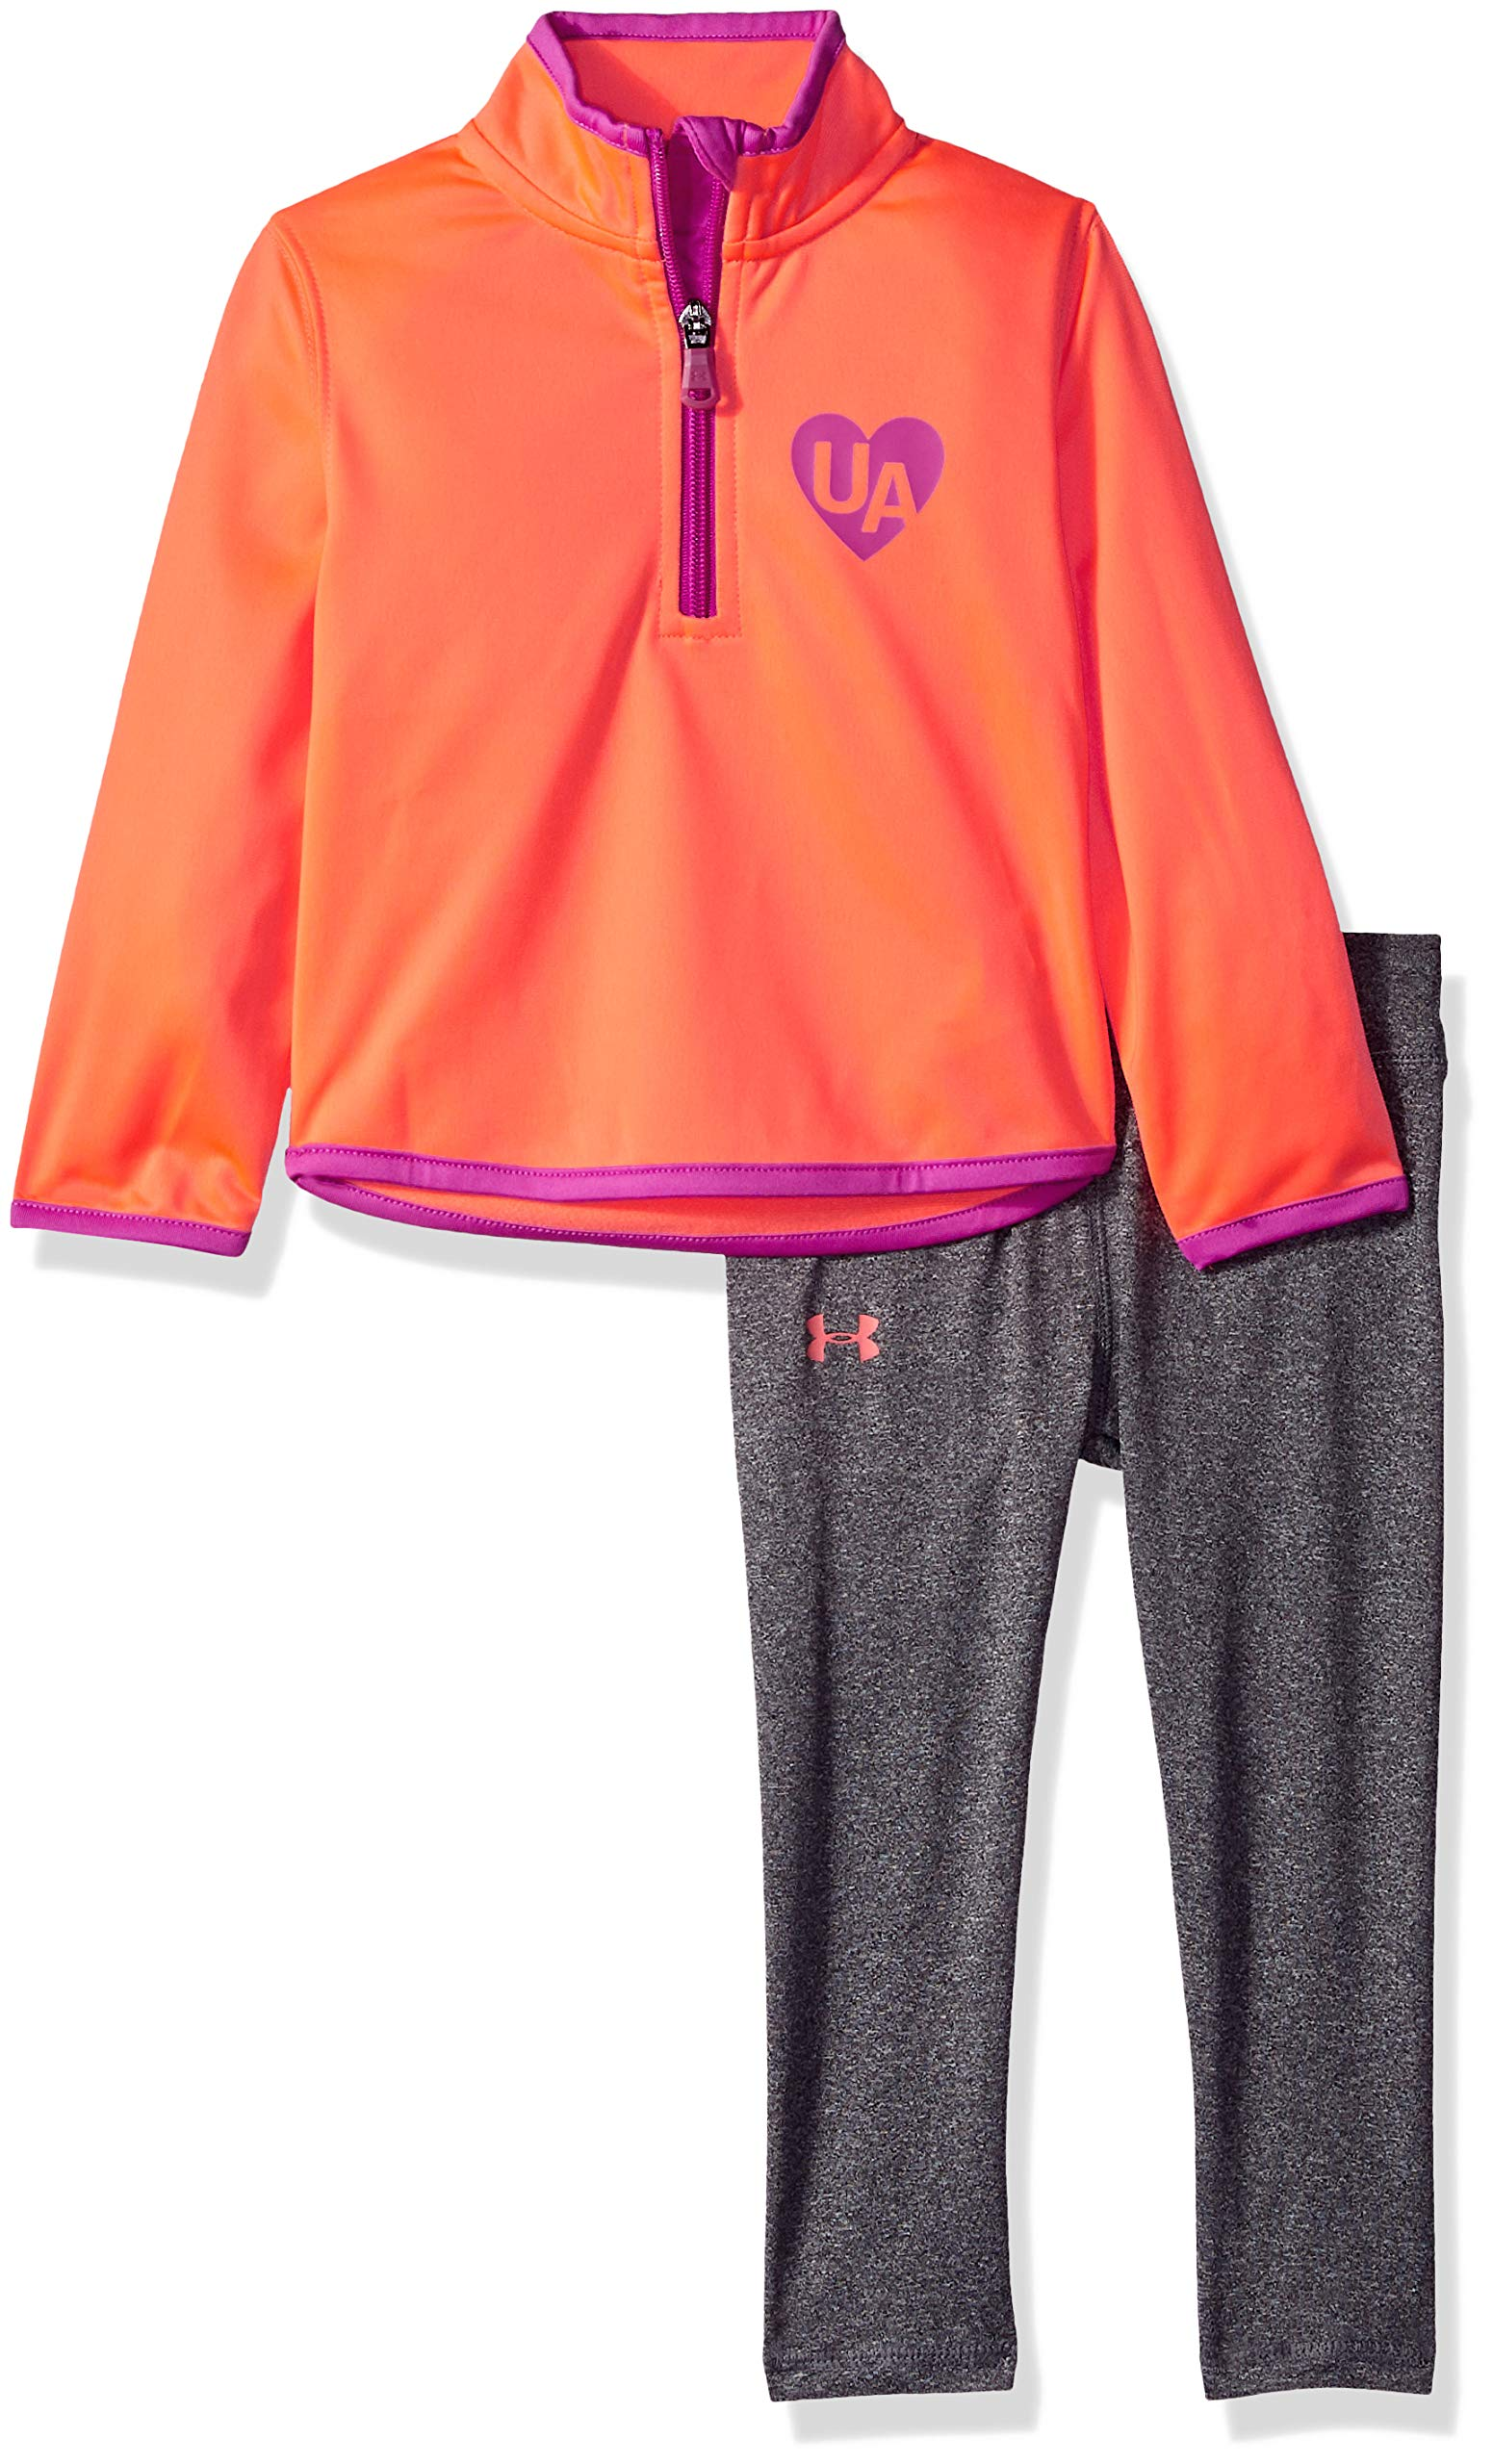 Under Armour Girls' Toddler Track Jacket and Pant Set, After Burn Heartbeat, 2T by Under Armour